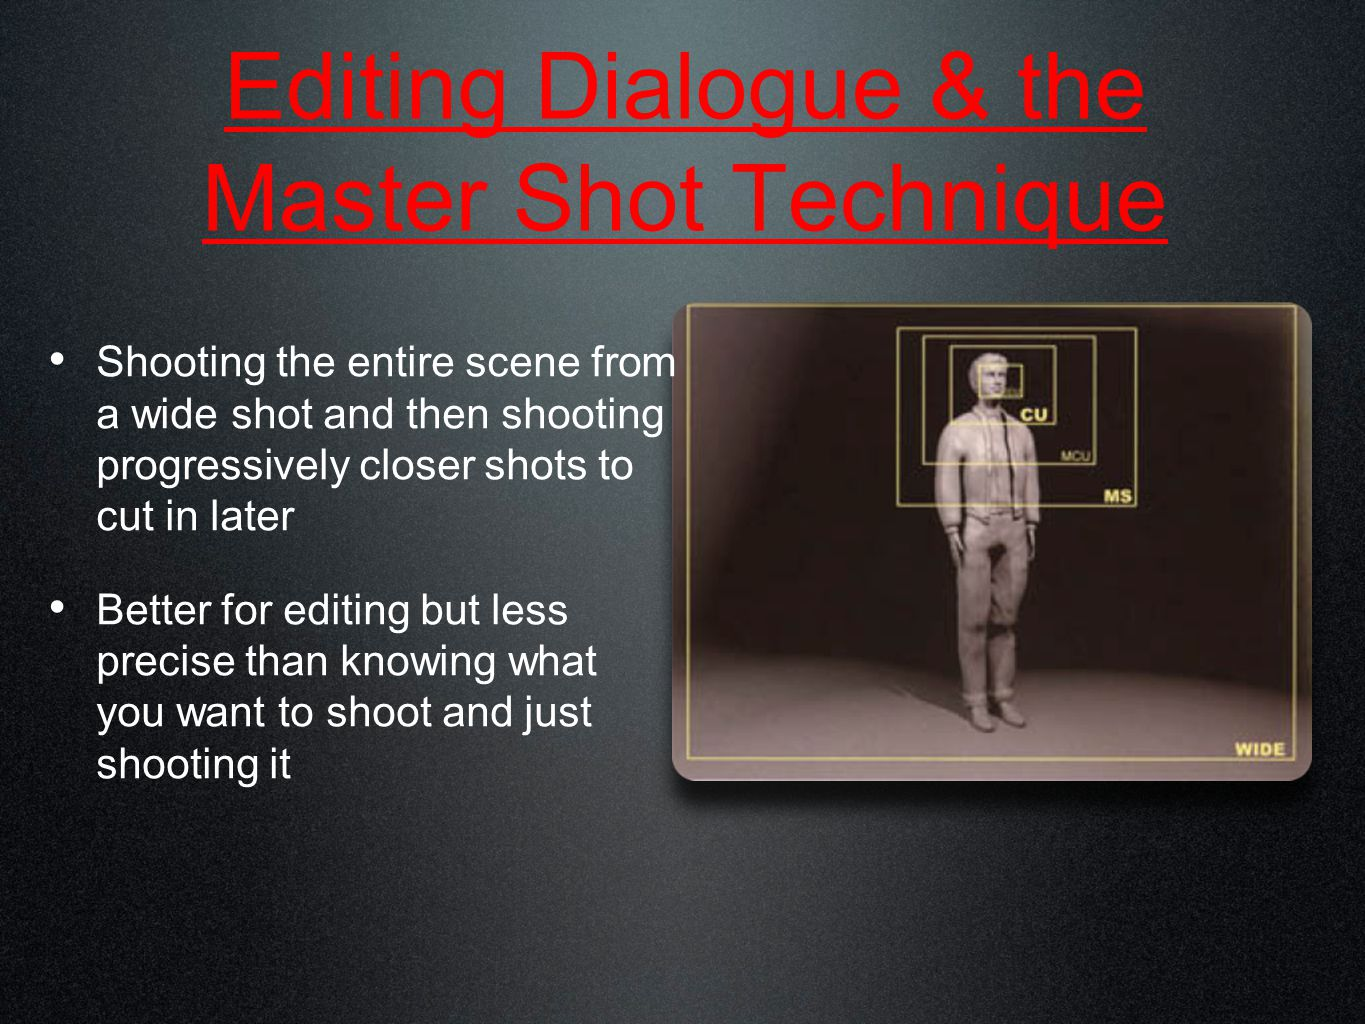 Editing Dialogue & the Master Shot Technique Shooting the entire scene from a wide shot and then shooting progressively closer shots to cut in later Better for editing but less precise than knowing what you want to shoot and just shooting it